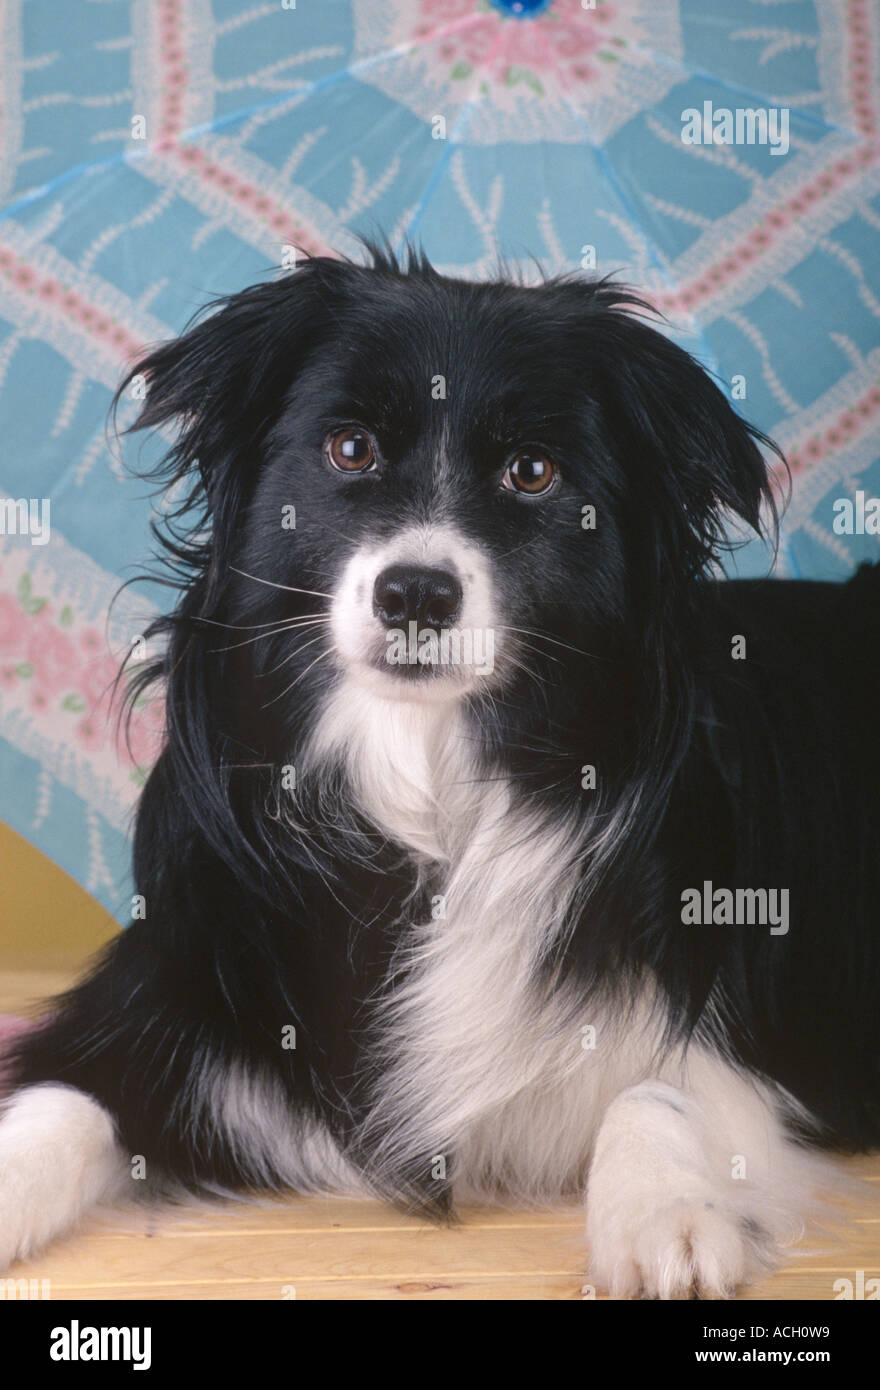 Stock Photo Dog Mixed Breed Pomeranian Border Collie Cross Pr 198